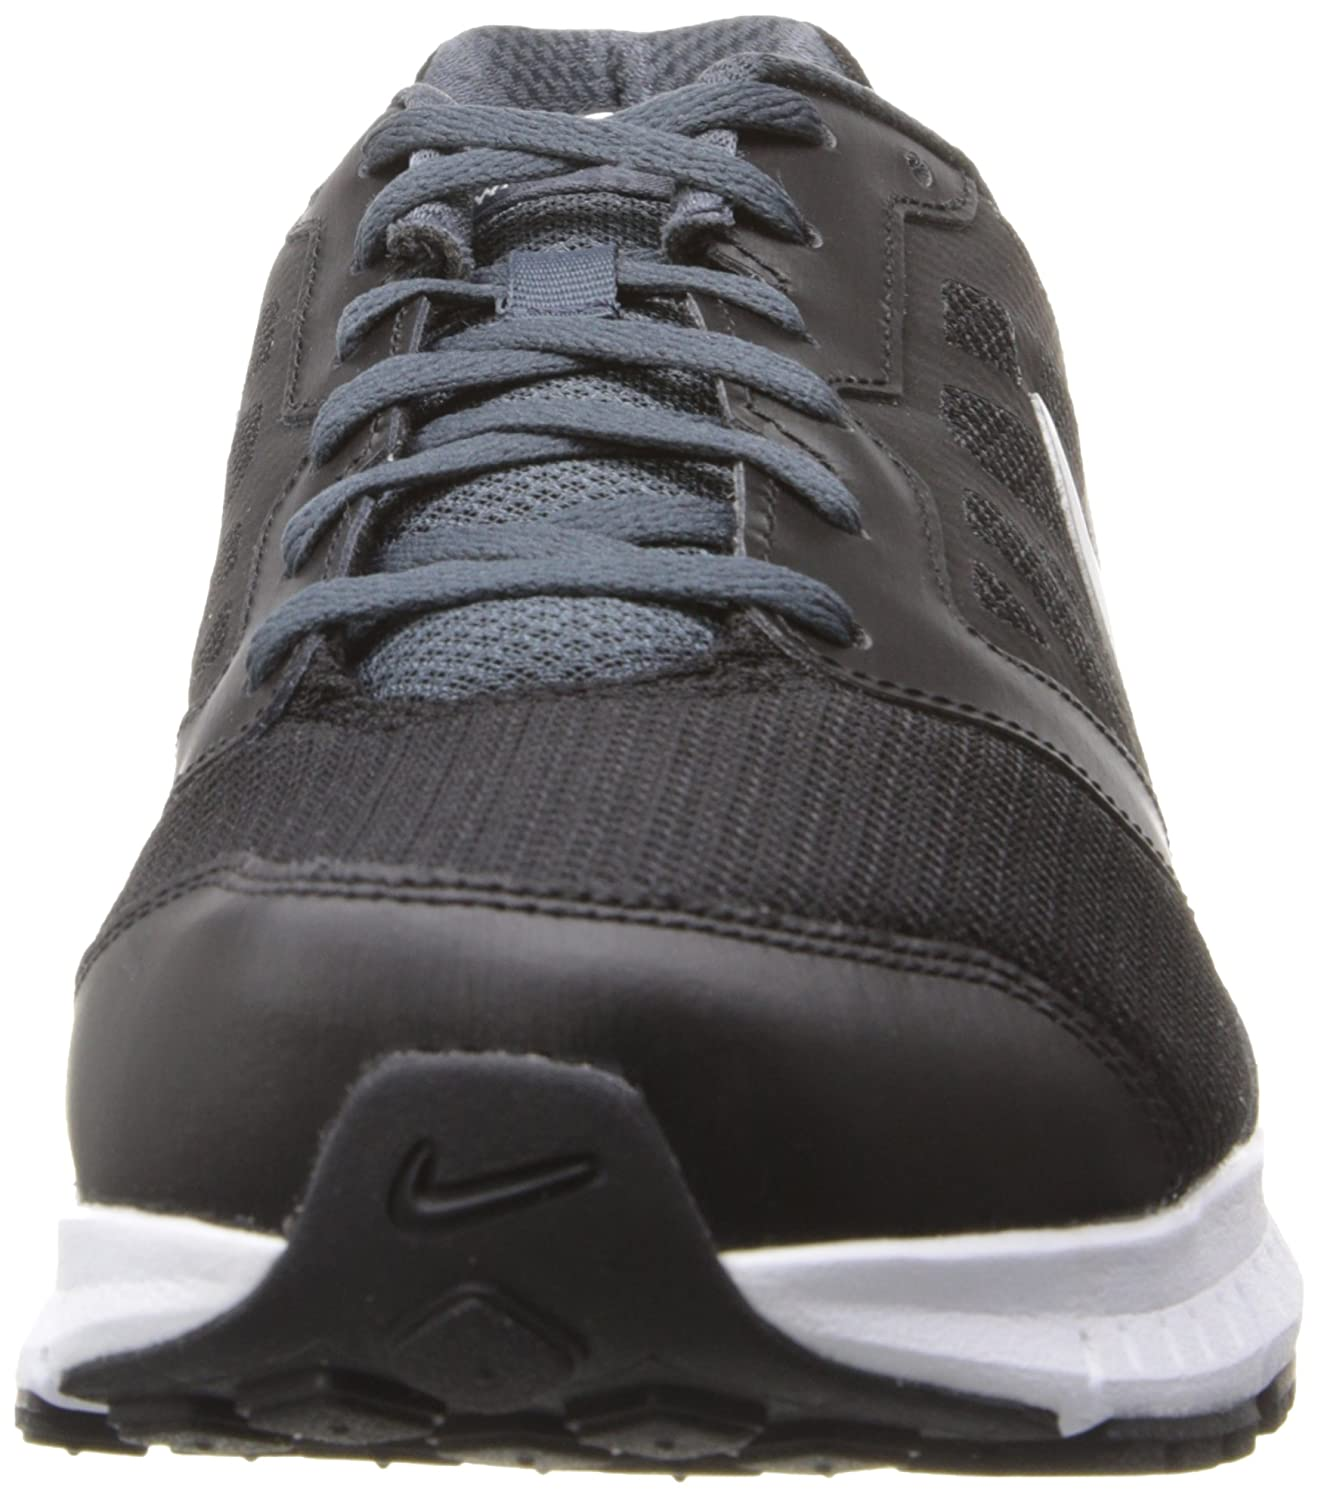 Nike Downshifter 6 Running Shoe B00IECDX64 7 D(M) US|Black/Magnet Grey/White